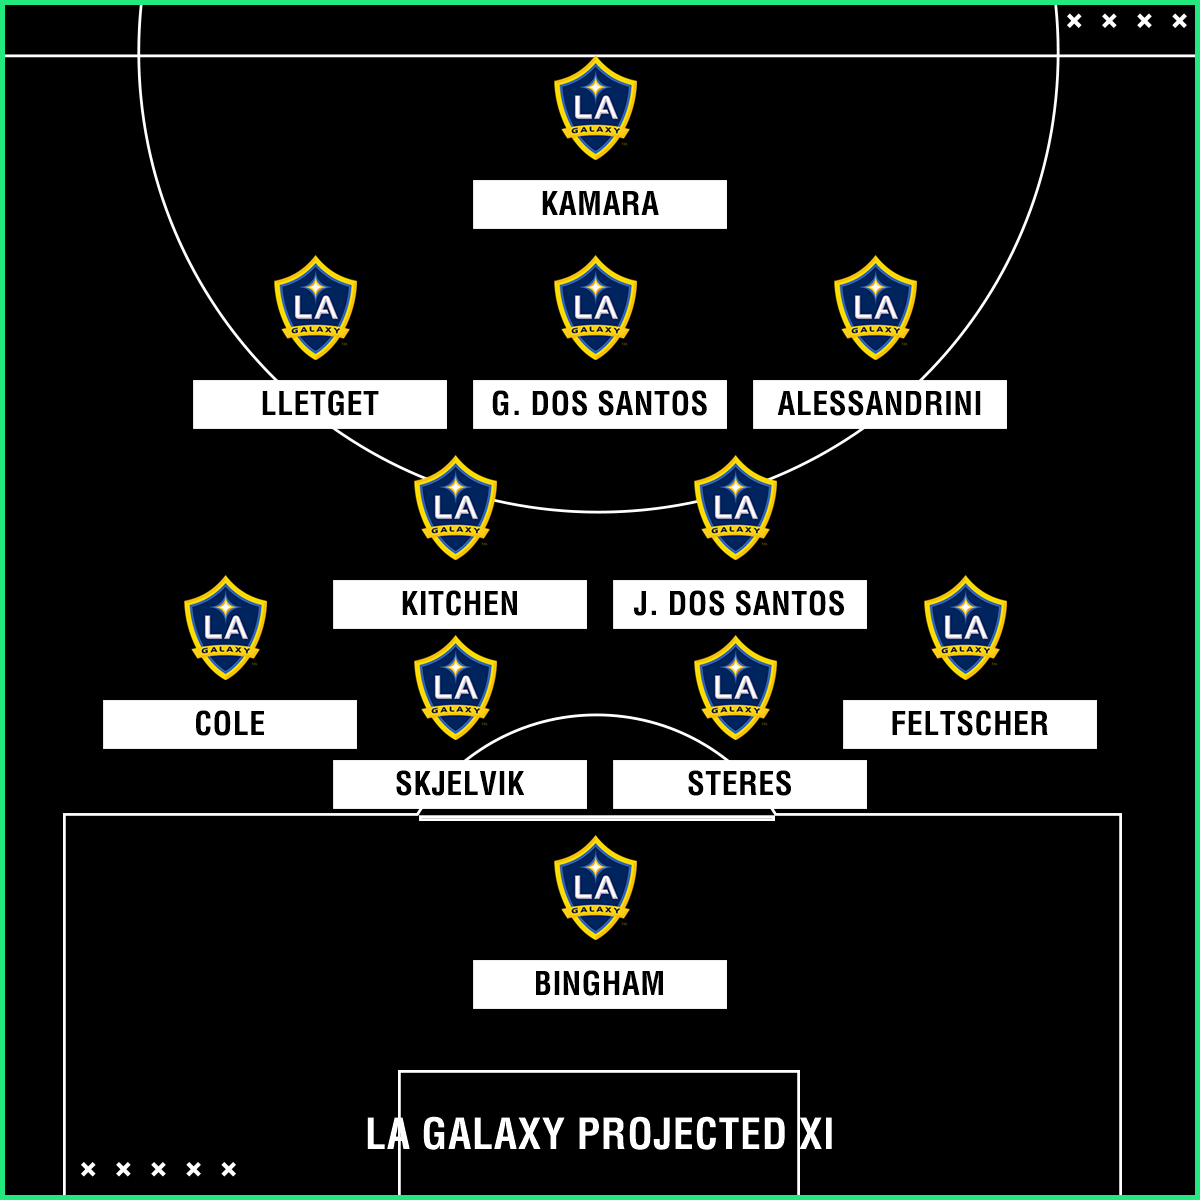 Campeonato Brasileiro Key Missing Players: LA Galaxy 2018 Season Preview: Roster, Projected Lineup